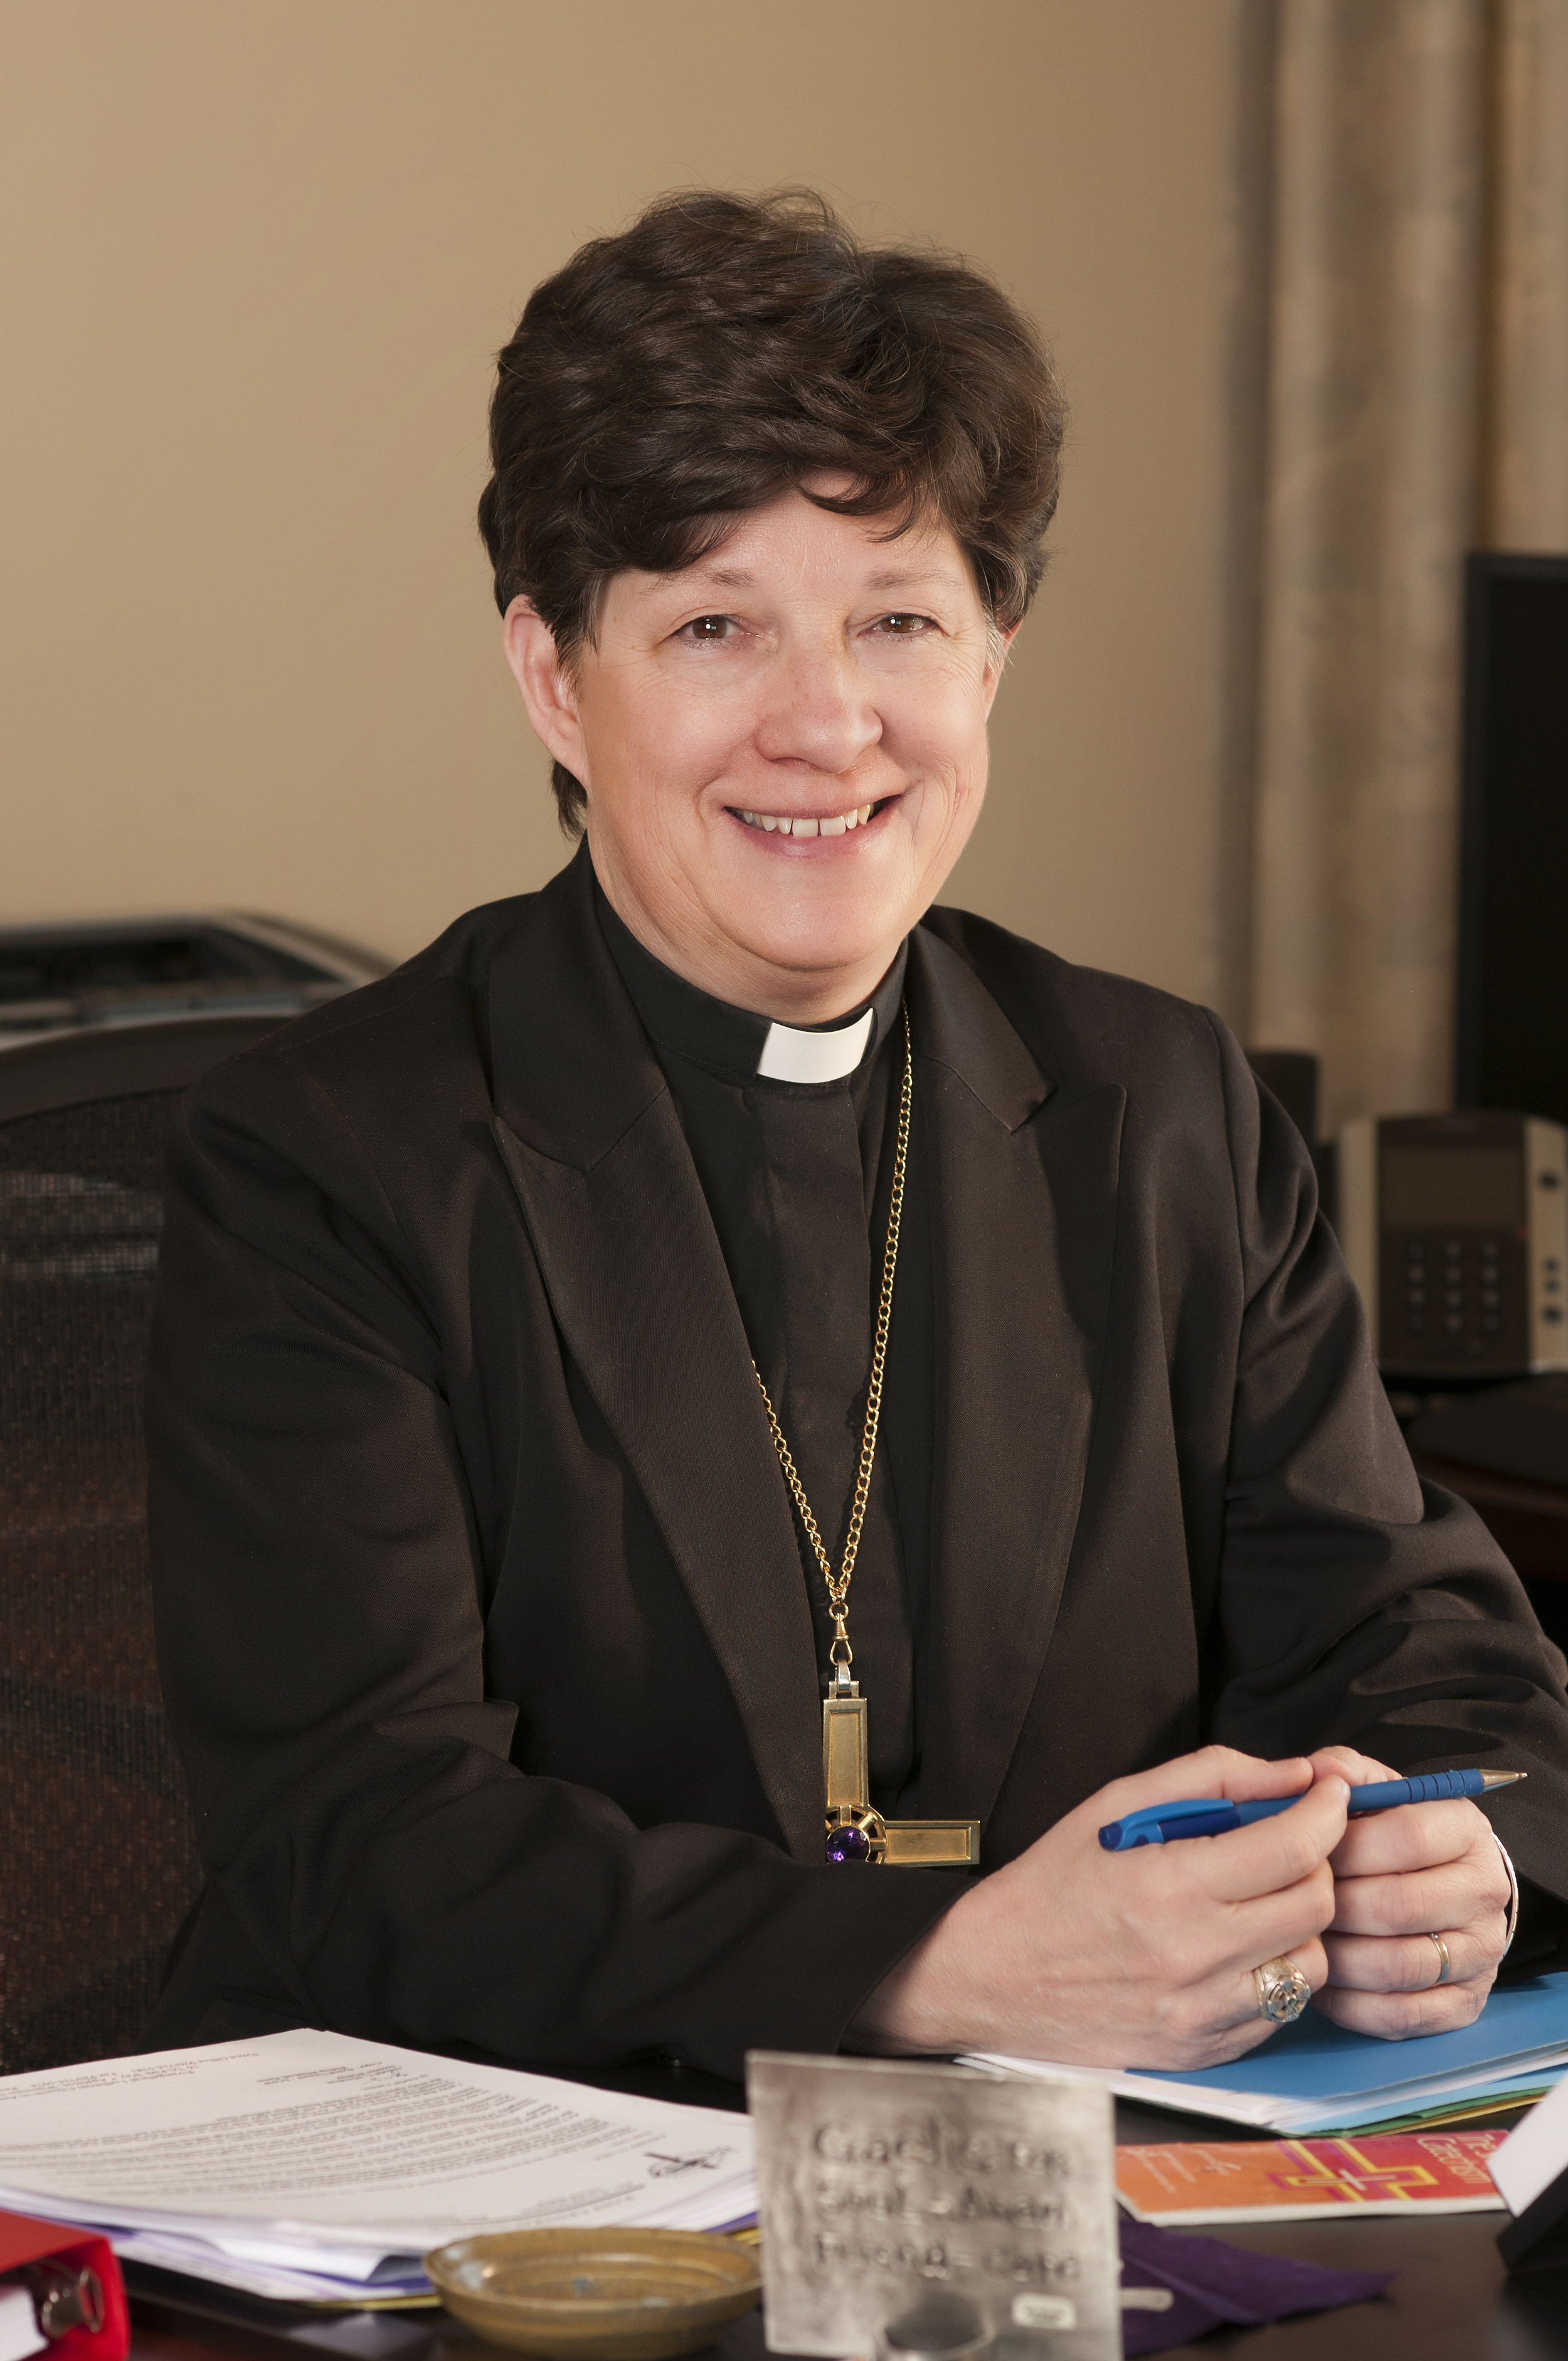 Bishop_Elizabeth_A_Eaton_Select_10.jpg